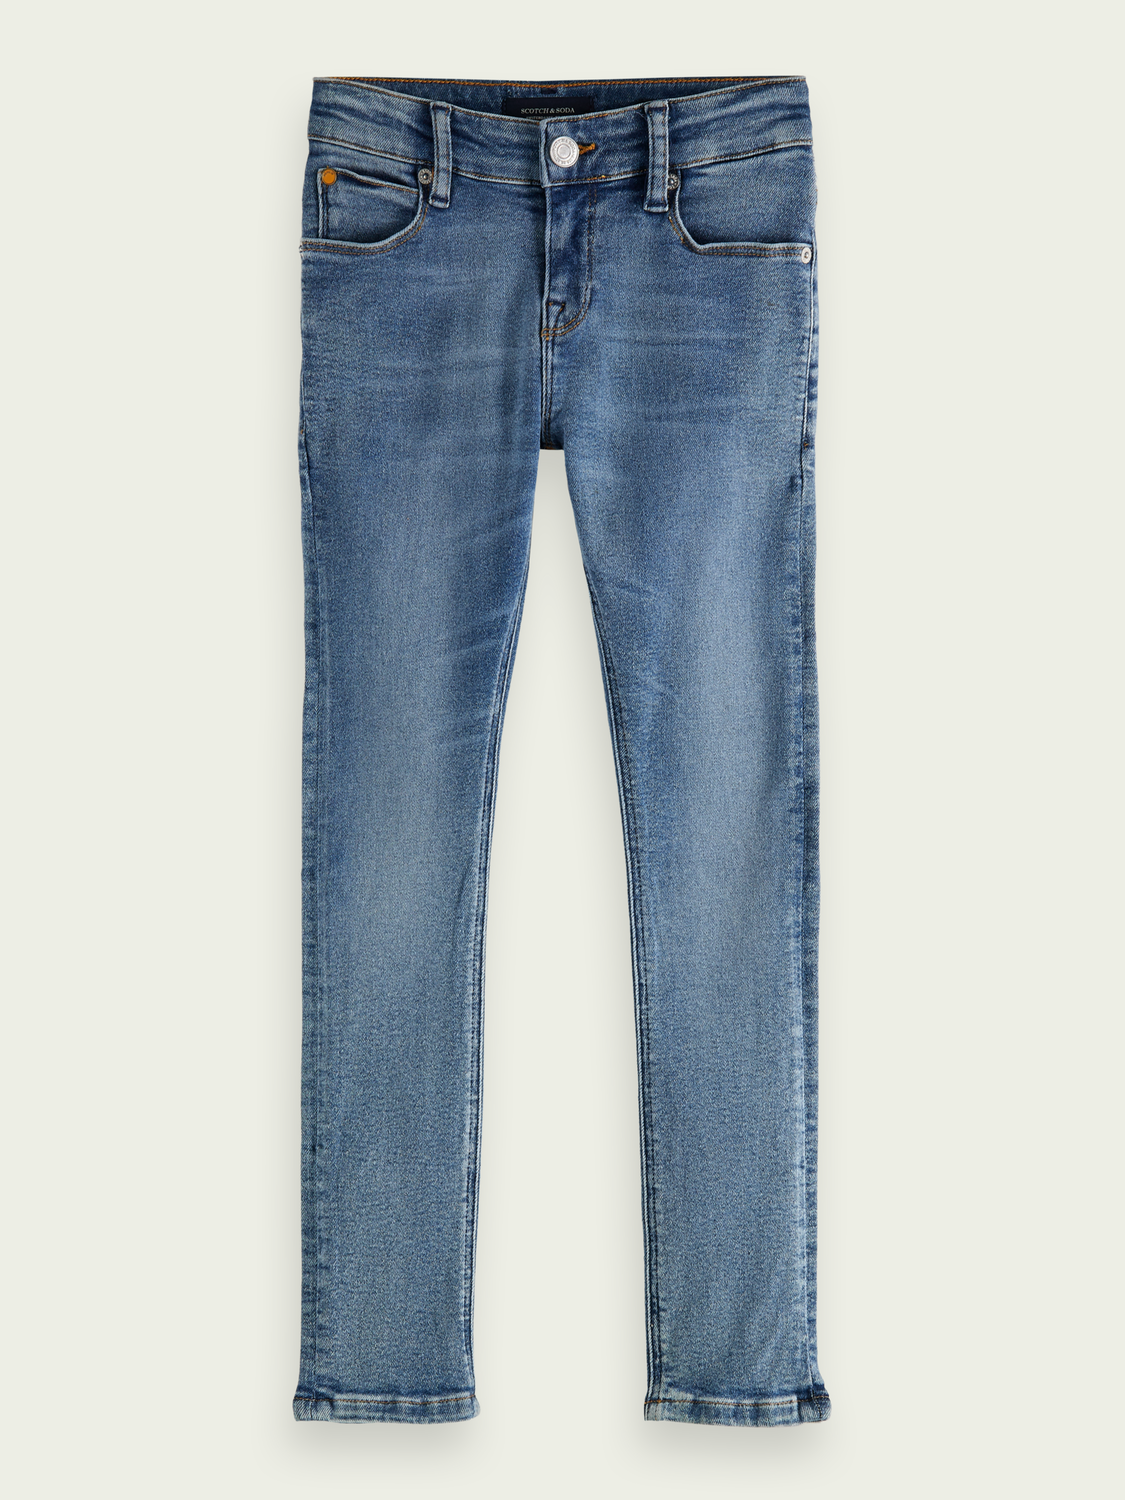 Kids The Tack tapered super-skinny jeans - Into The Light